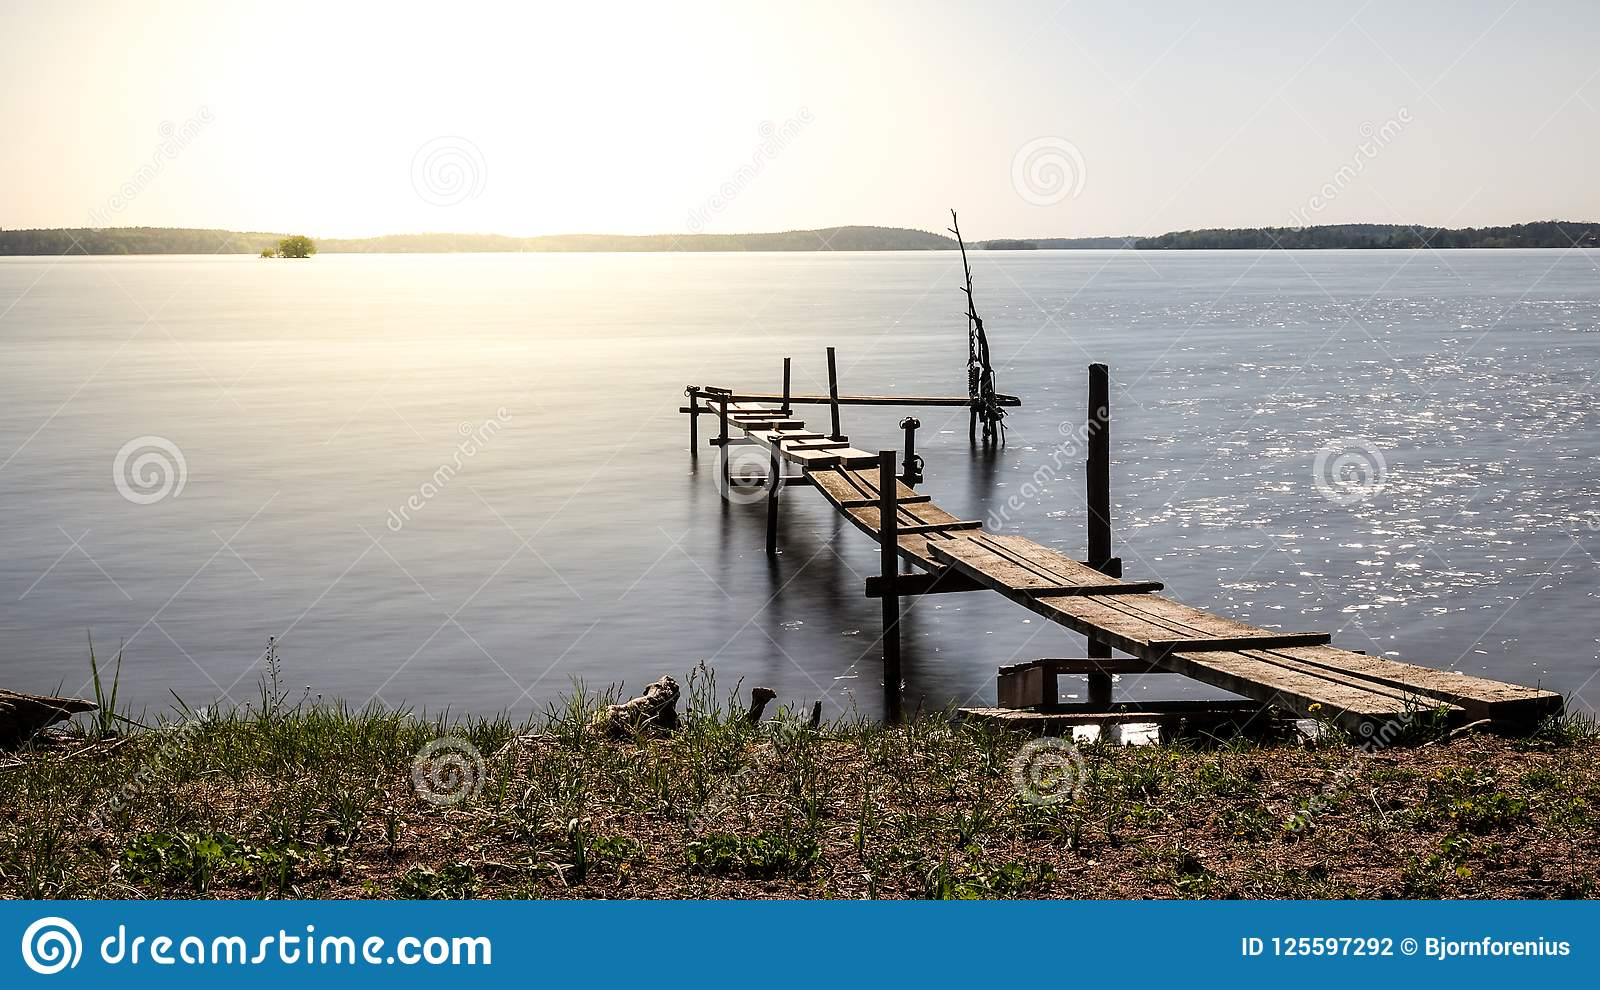 Beautiful Picture On A Small Jetty Bridge / Pier In A Lake ...